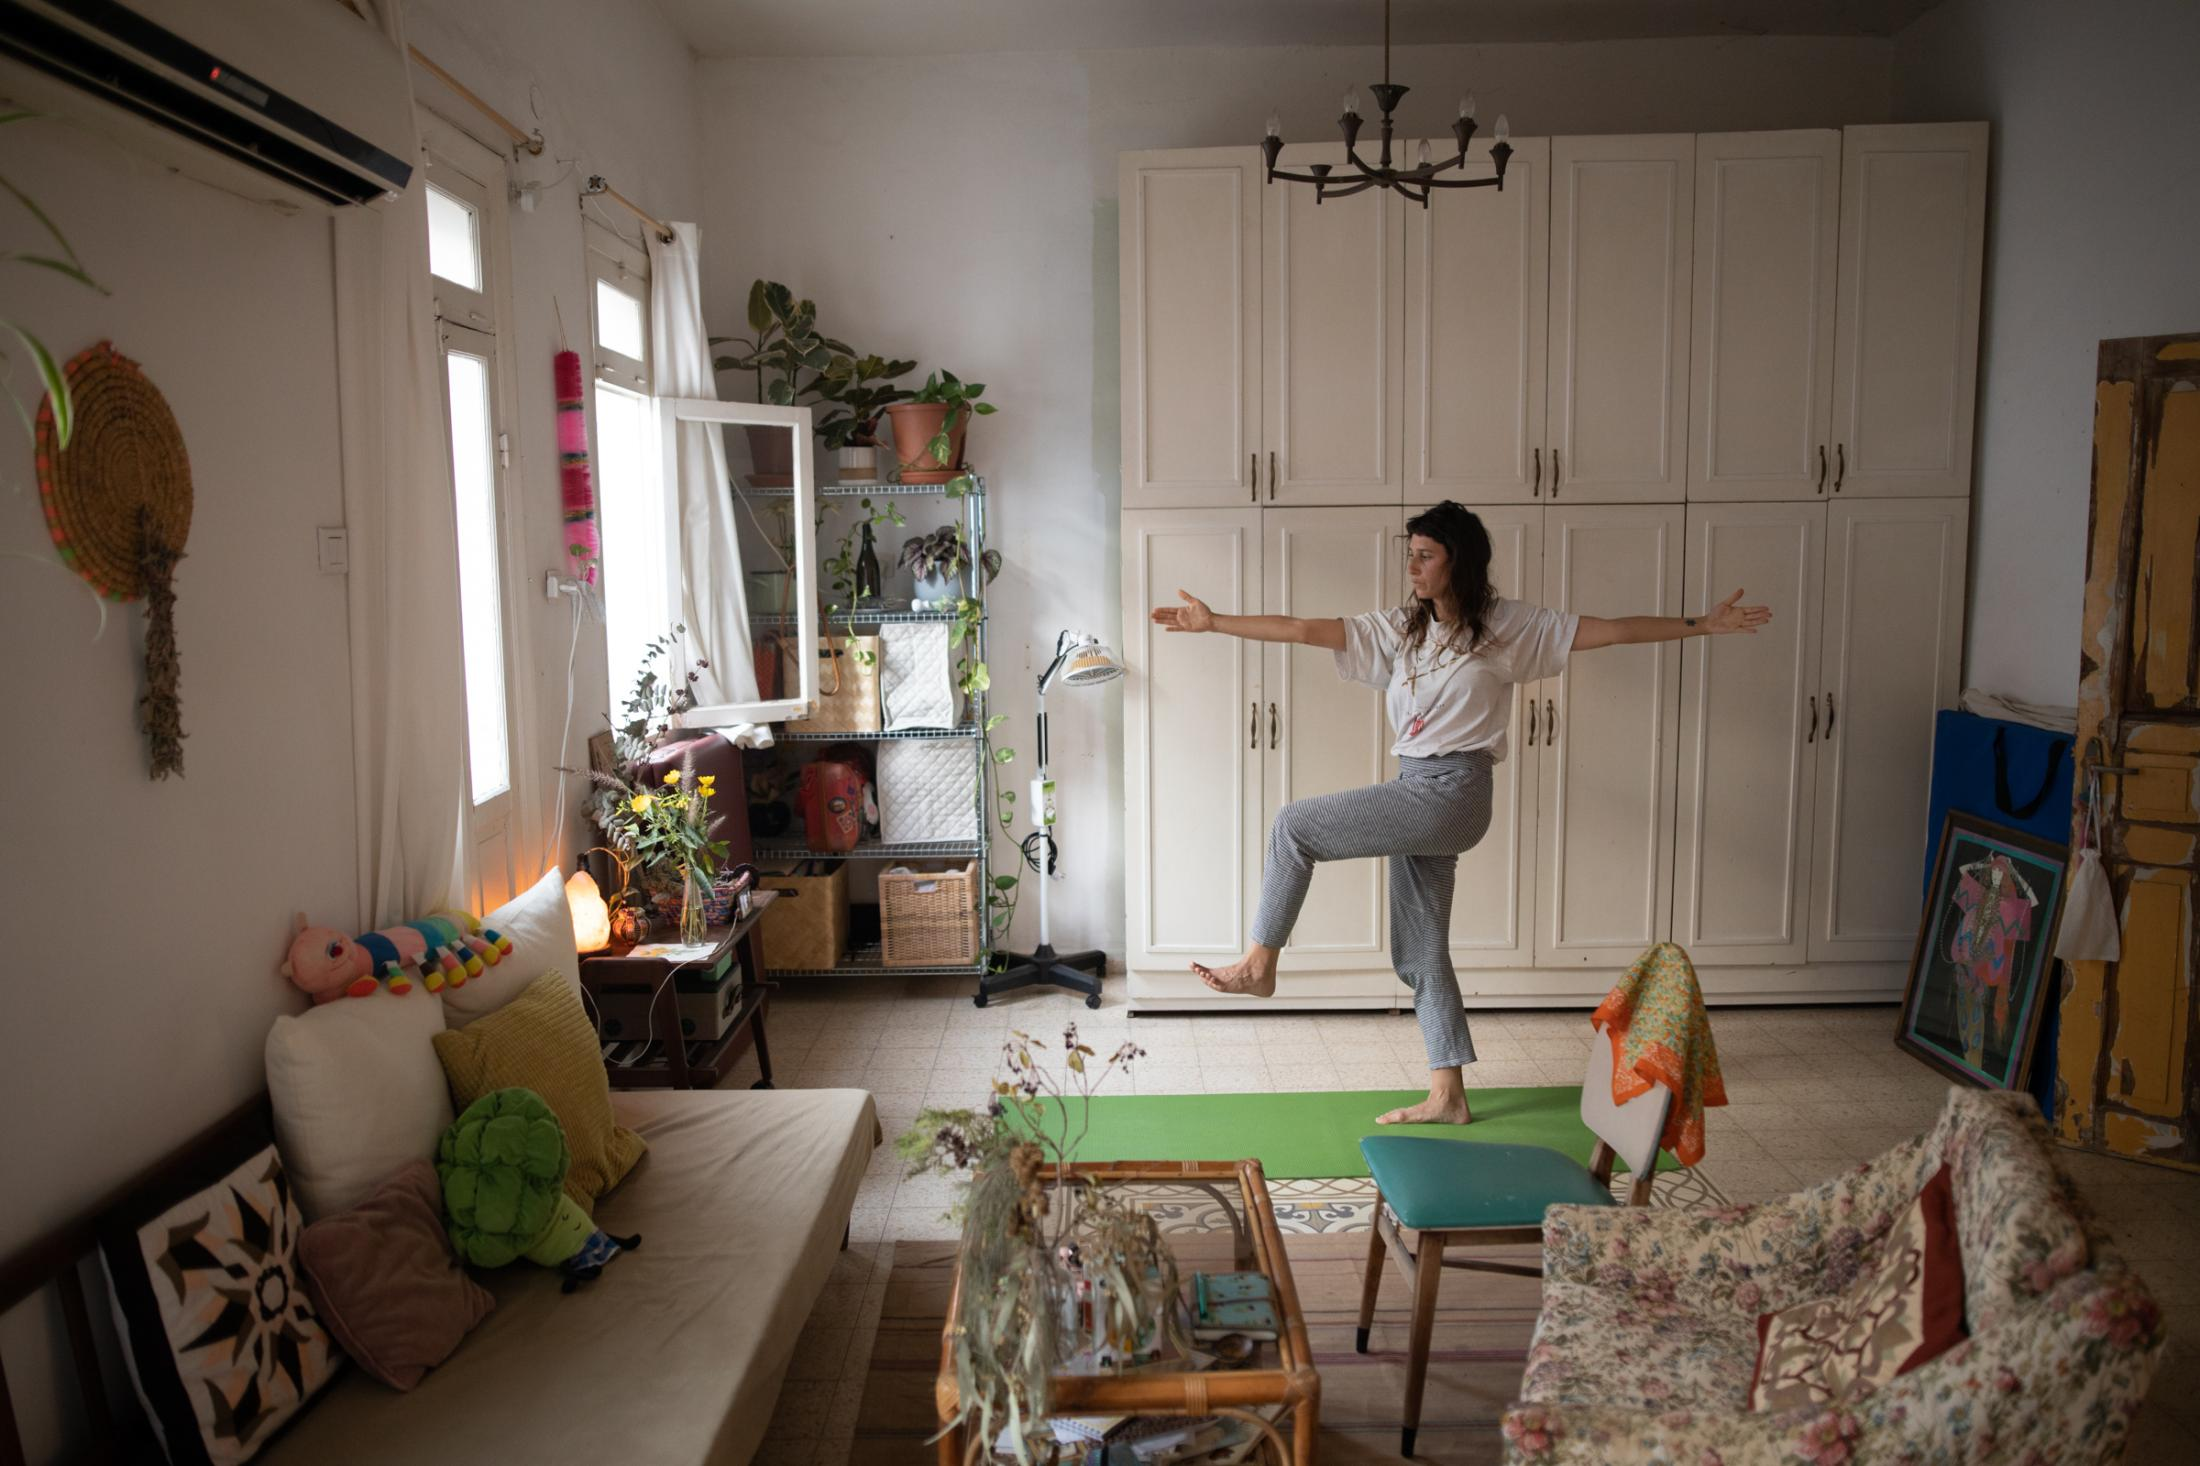 """Yuli Yunger, 34, participates in an online yoga class in her home in Tel Aviv, Israel, April 19, 2020. """"The switch to online was not natural for me. I don't even have a laptop, I have only my cell phone. In the beginning it was weird, and I found it too mechanical. I like the presence of people and of the teacher and that she will move me when I need to be moved. But I got used to it really fast. People are getting used to things, we adjust. And I'm pretty young so I'm adjusting fast. New ideas and new things that you are doing in your life are easy to accept. And it will be easy to leave it as well."""""""